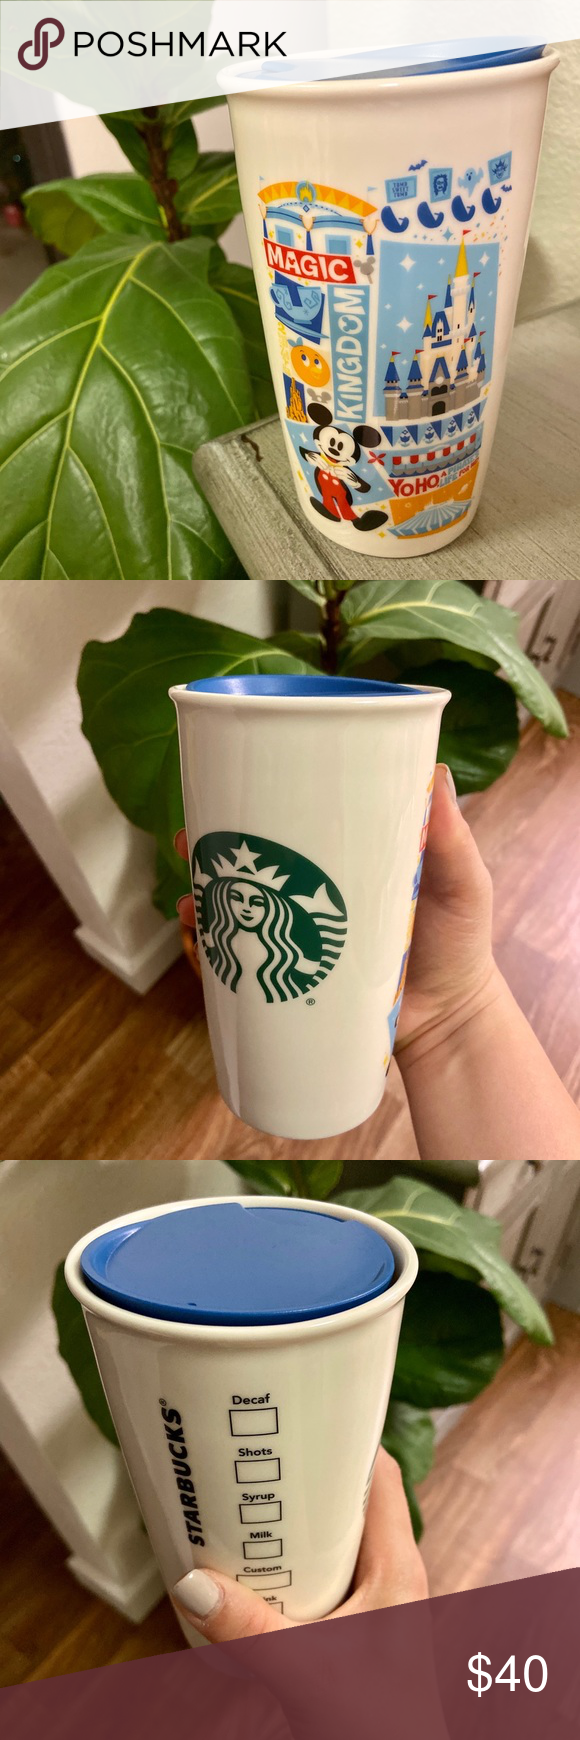 Starbucks Disney Cup Purchased at Starbucks inside Disney's Magic Kingdom park. Great for hot & cold drinks! Ceramic with plastic lid. Collectible!! :) Starbucks Dining Drinkware #disneycups